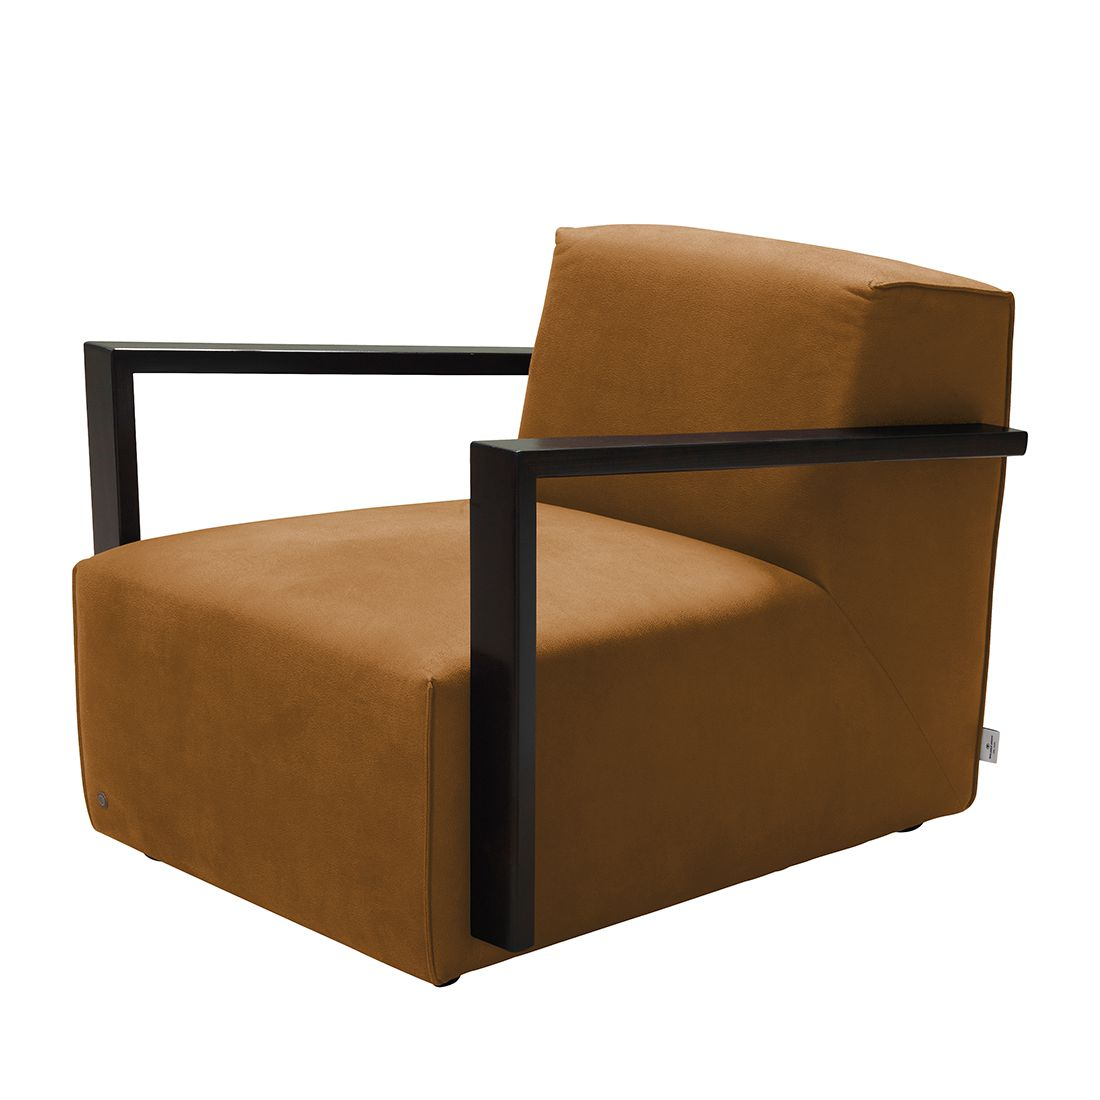 goedkoop Fauteuil Lazy antiekleren look Zonder hocker Lichtbruin Tom Tailor